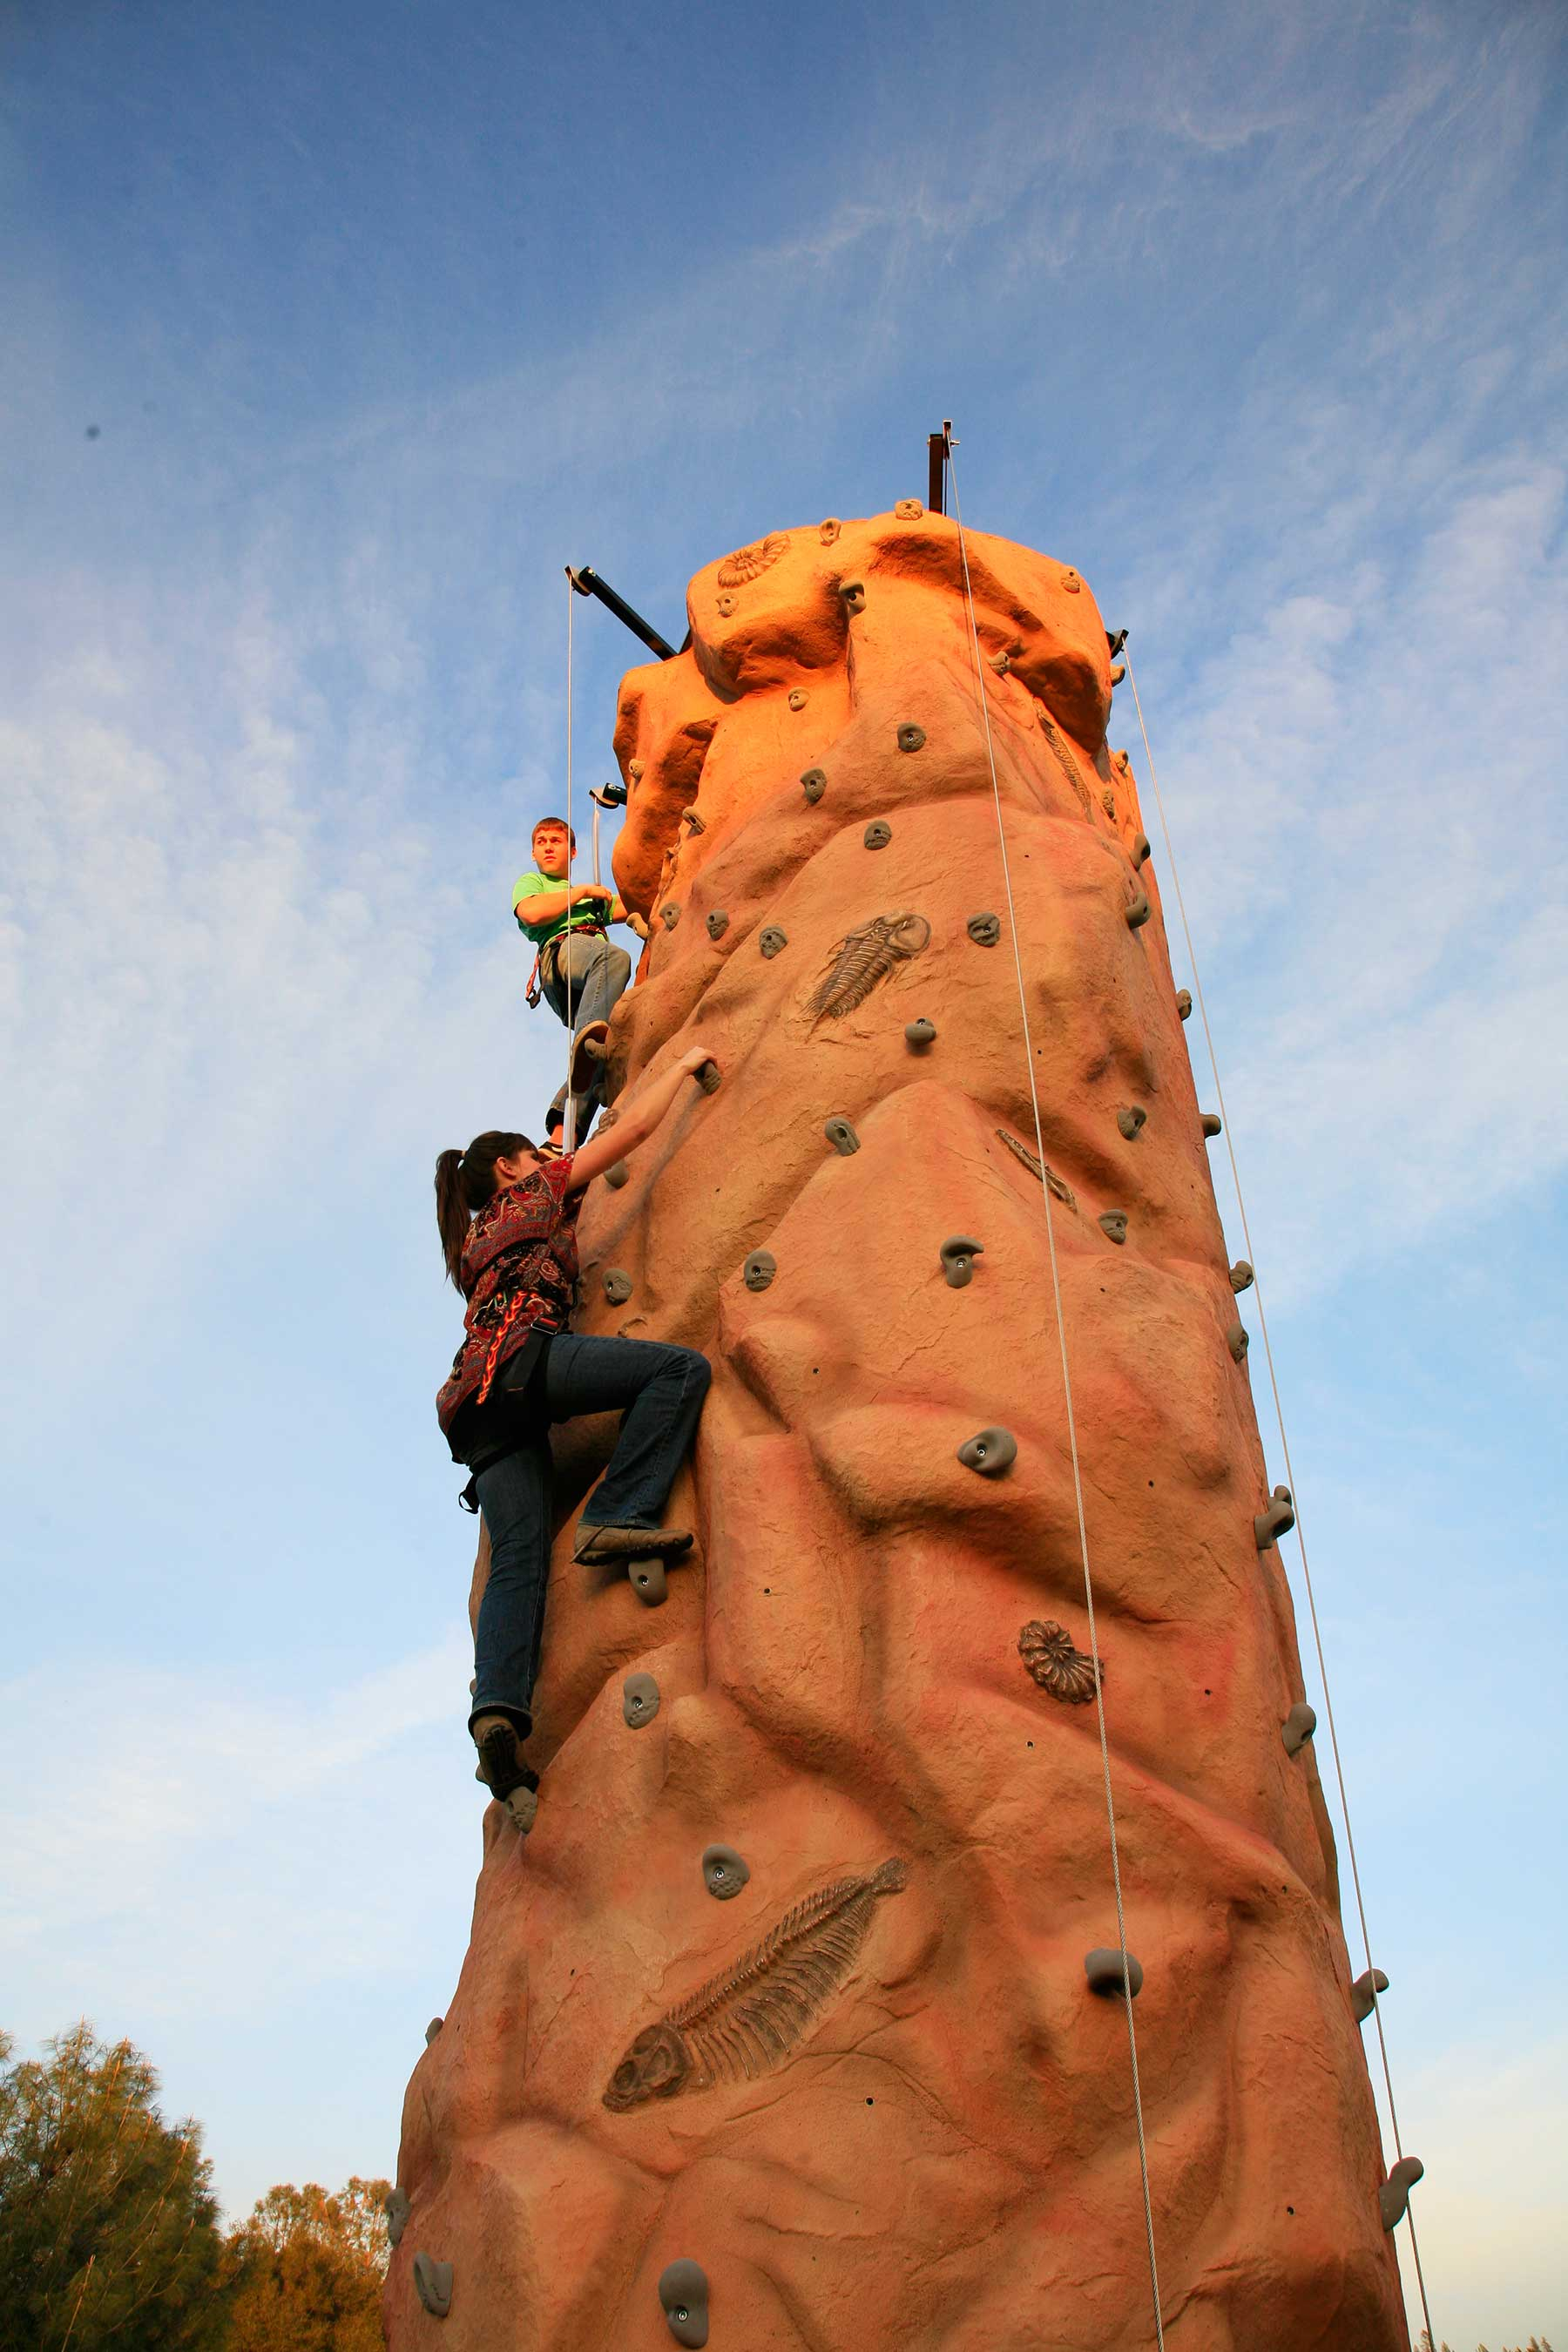 Stationary Climbing Wall Extreme Engineering on View Engineering